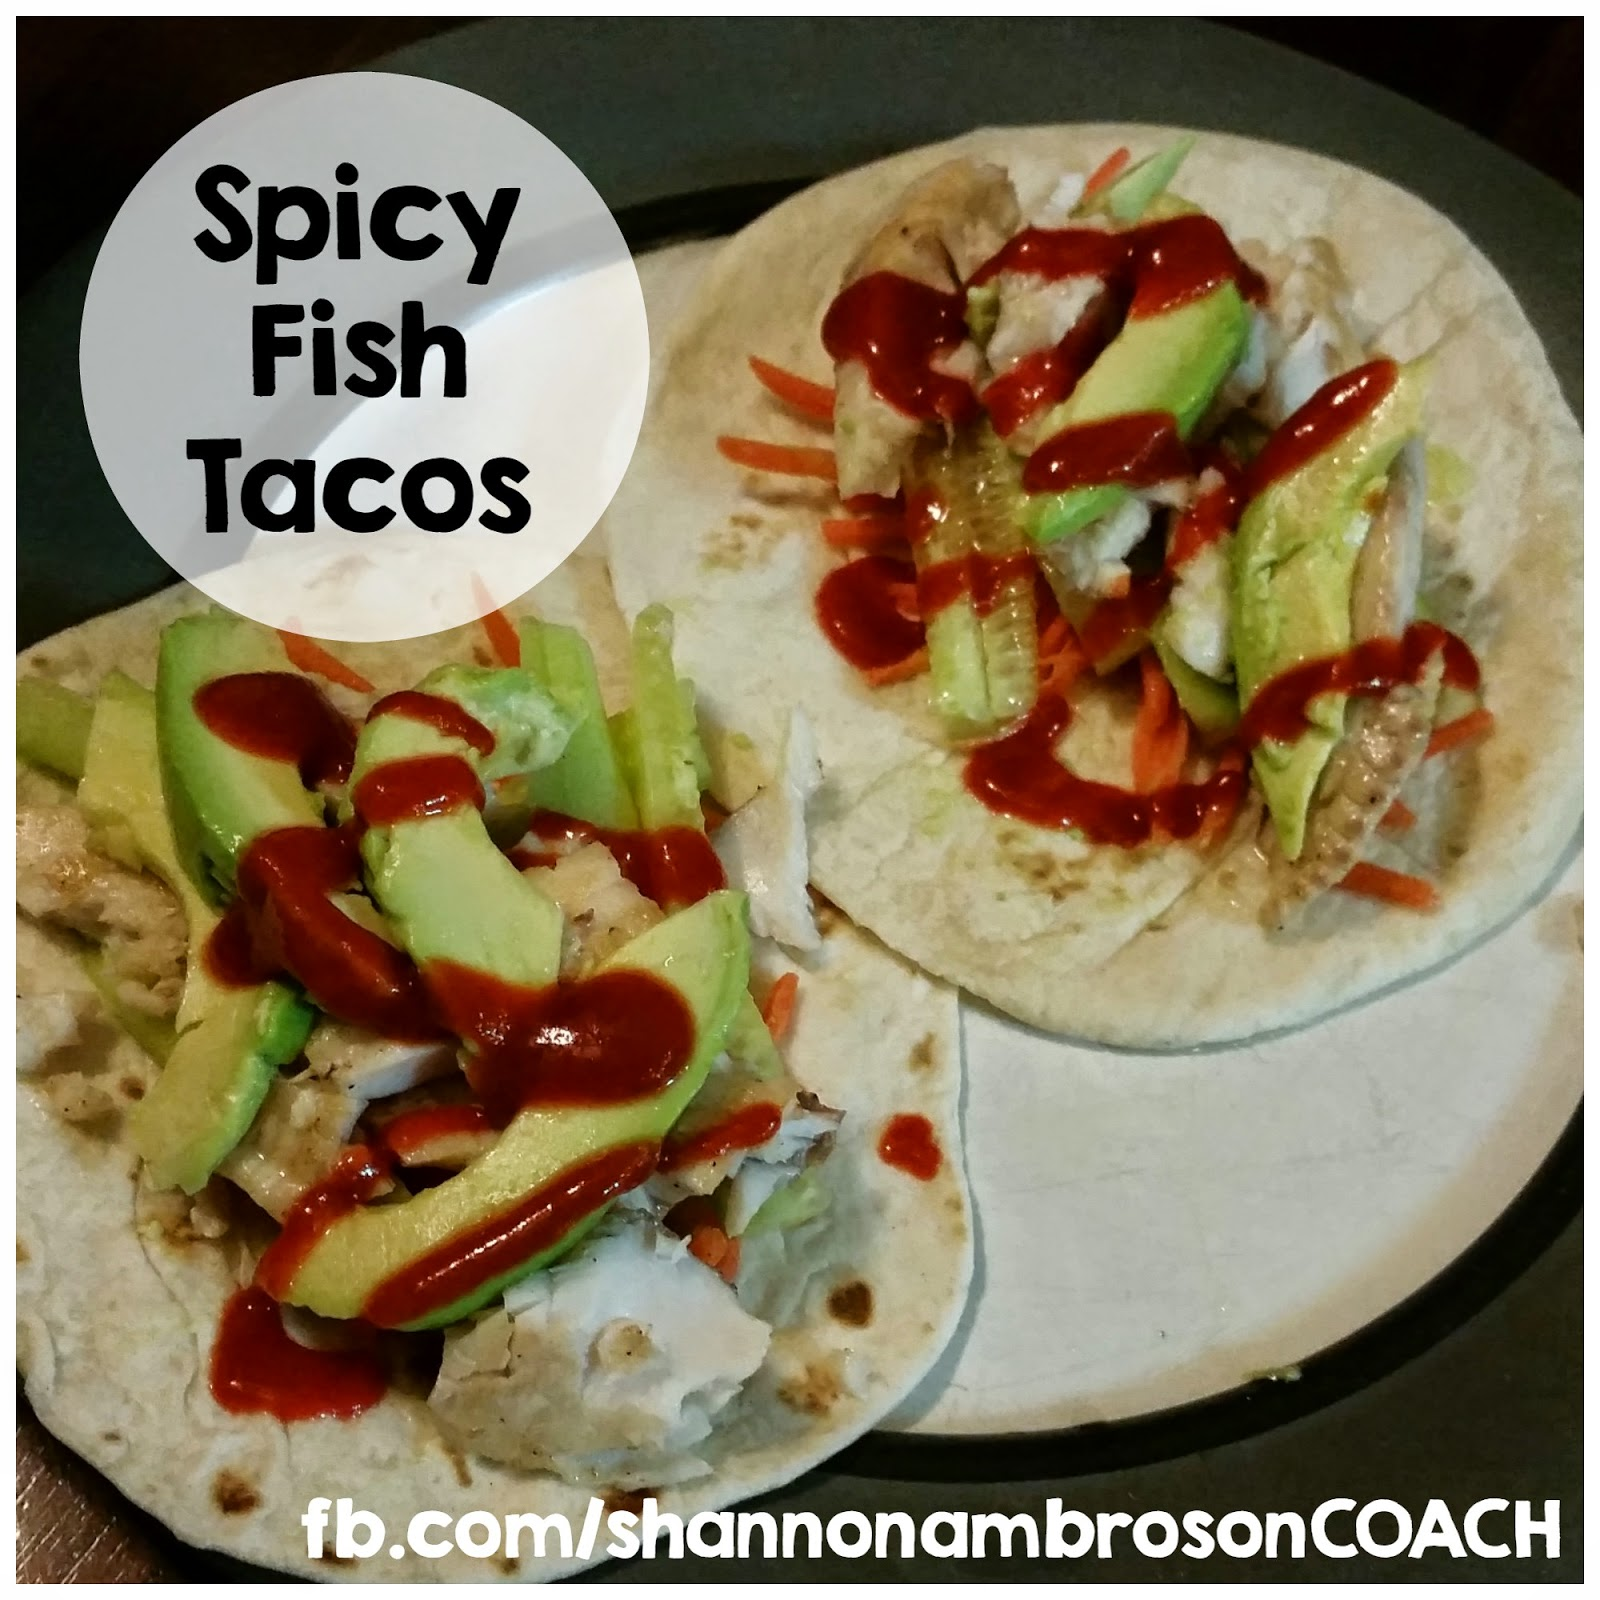 Quirky girl spicy fish tacos for Spicy fish tacos